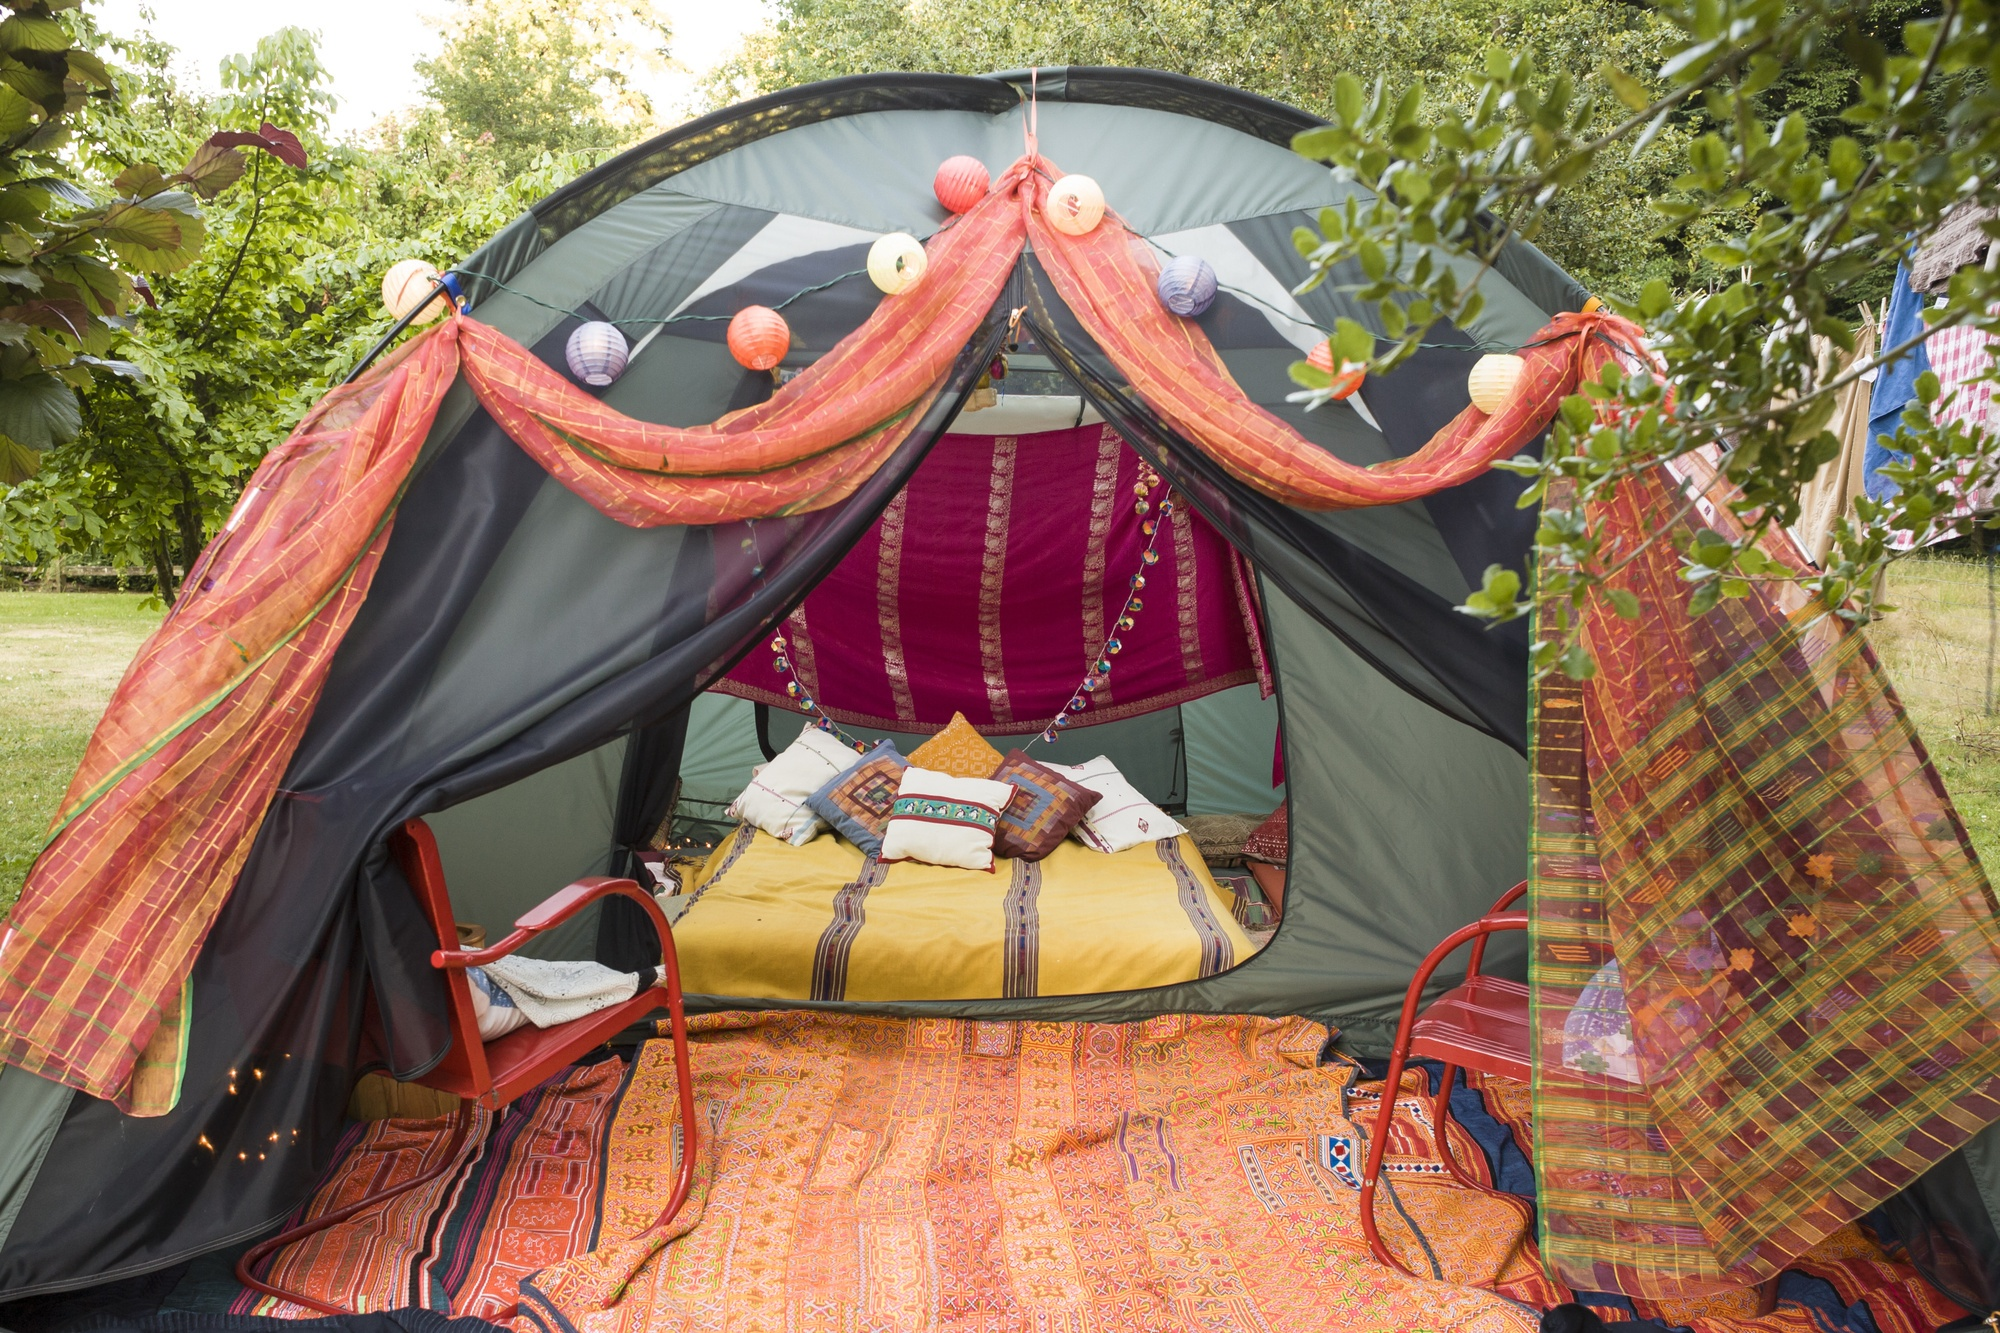 Mountain Chic: 4 Fabulous Tips for Camping in Style